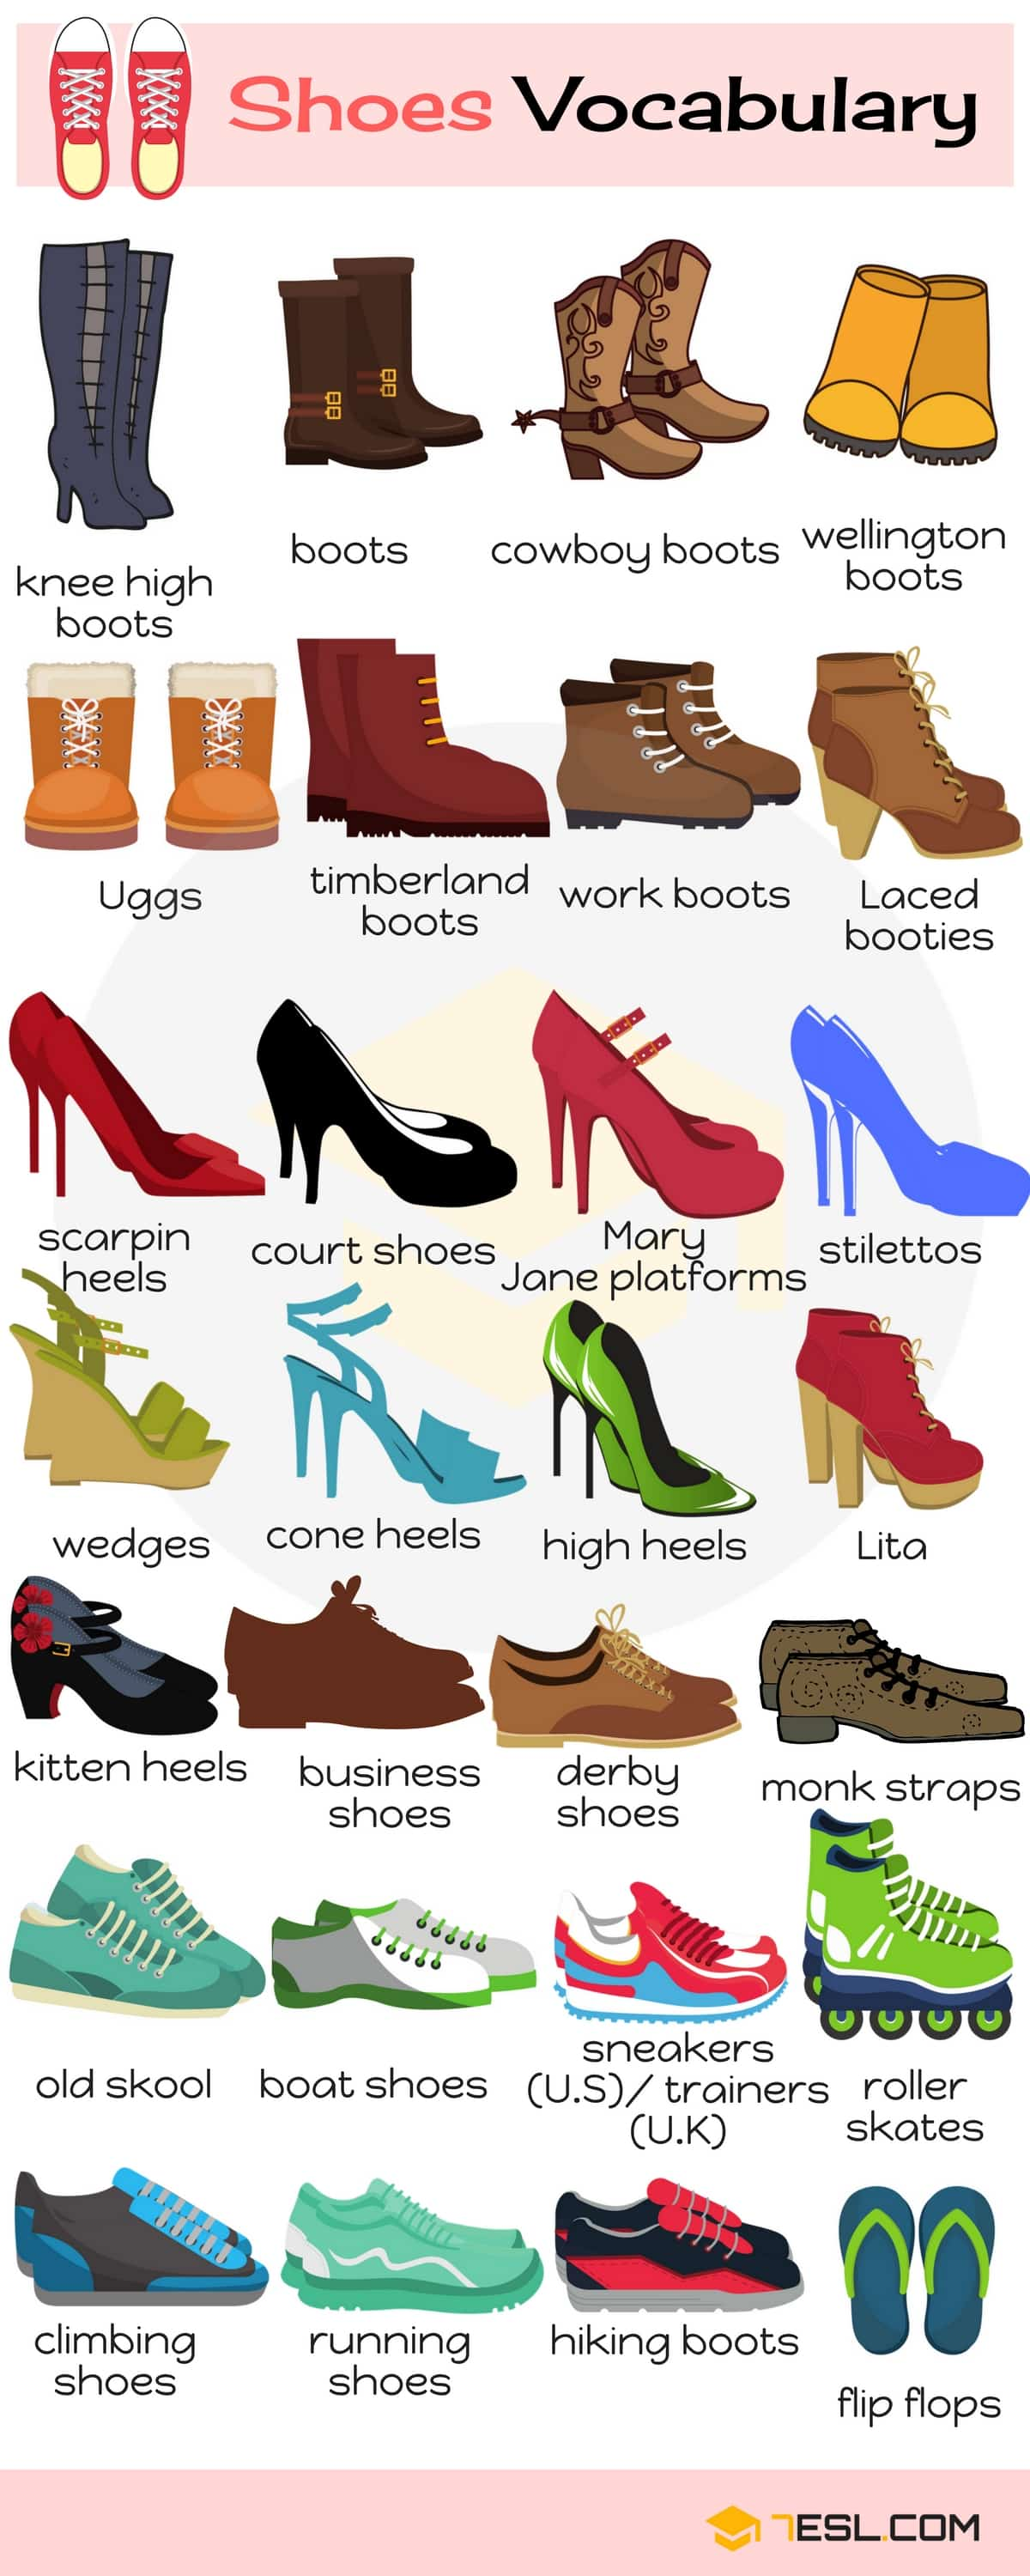 Shoes Vocabulary in English | Learn Names of Shoes 49